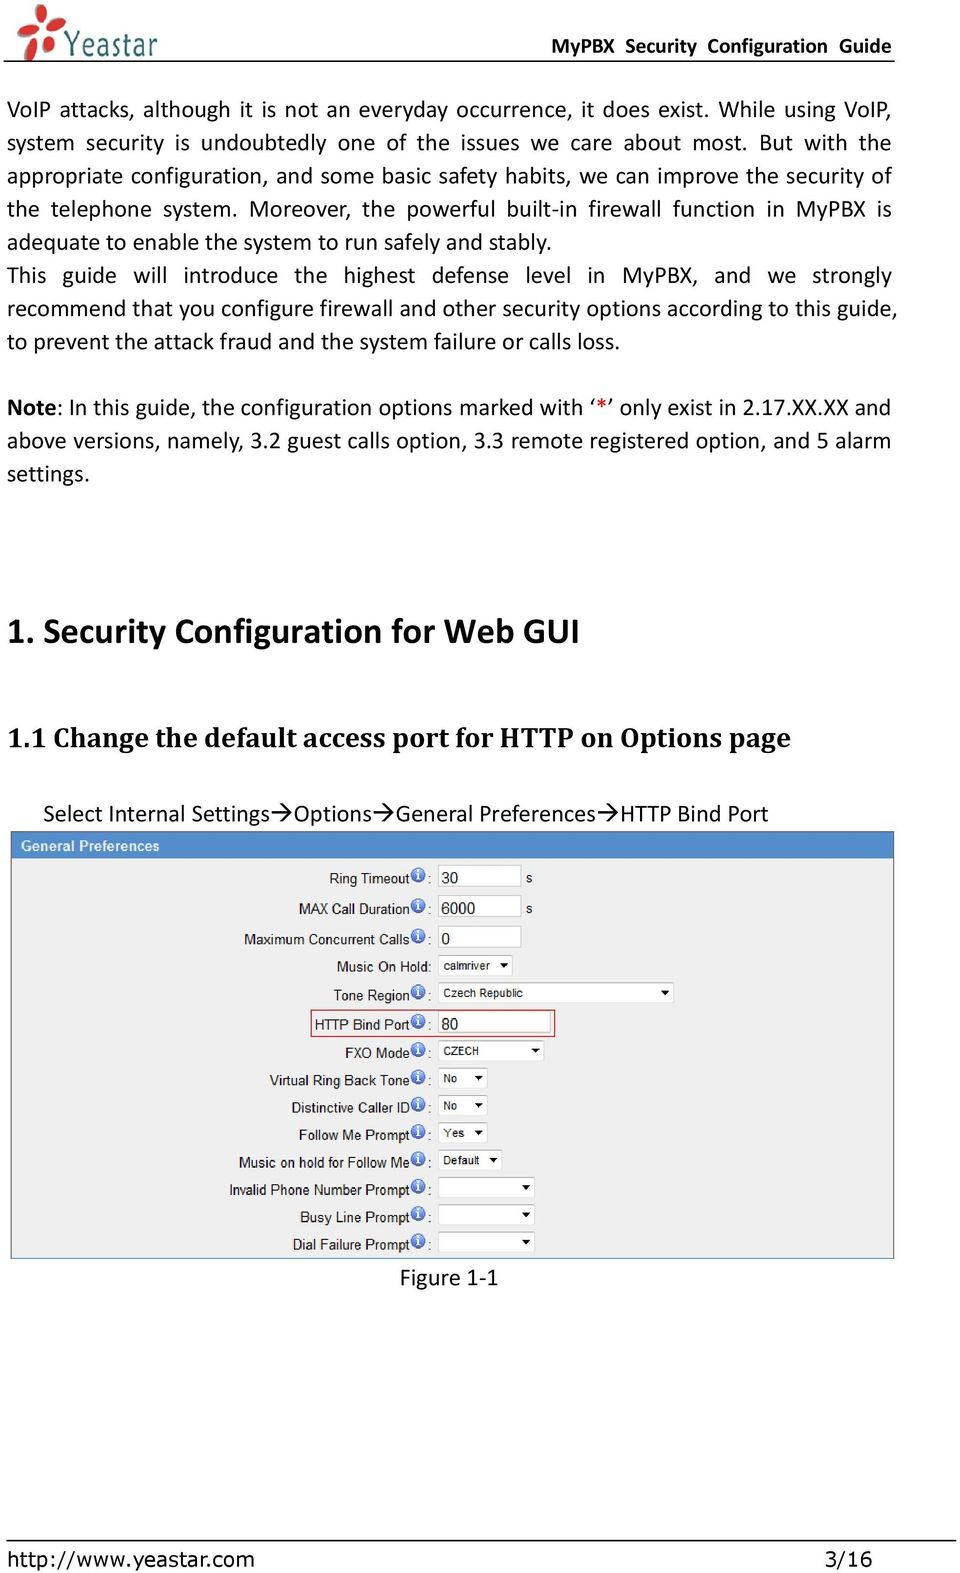 MyPBX Security Configuration Guide - PDF